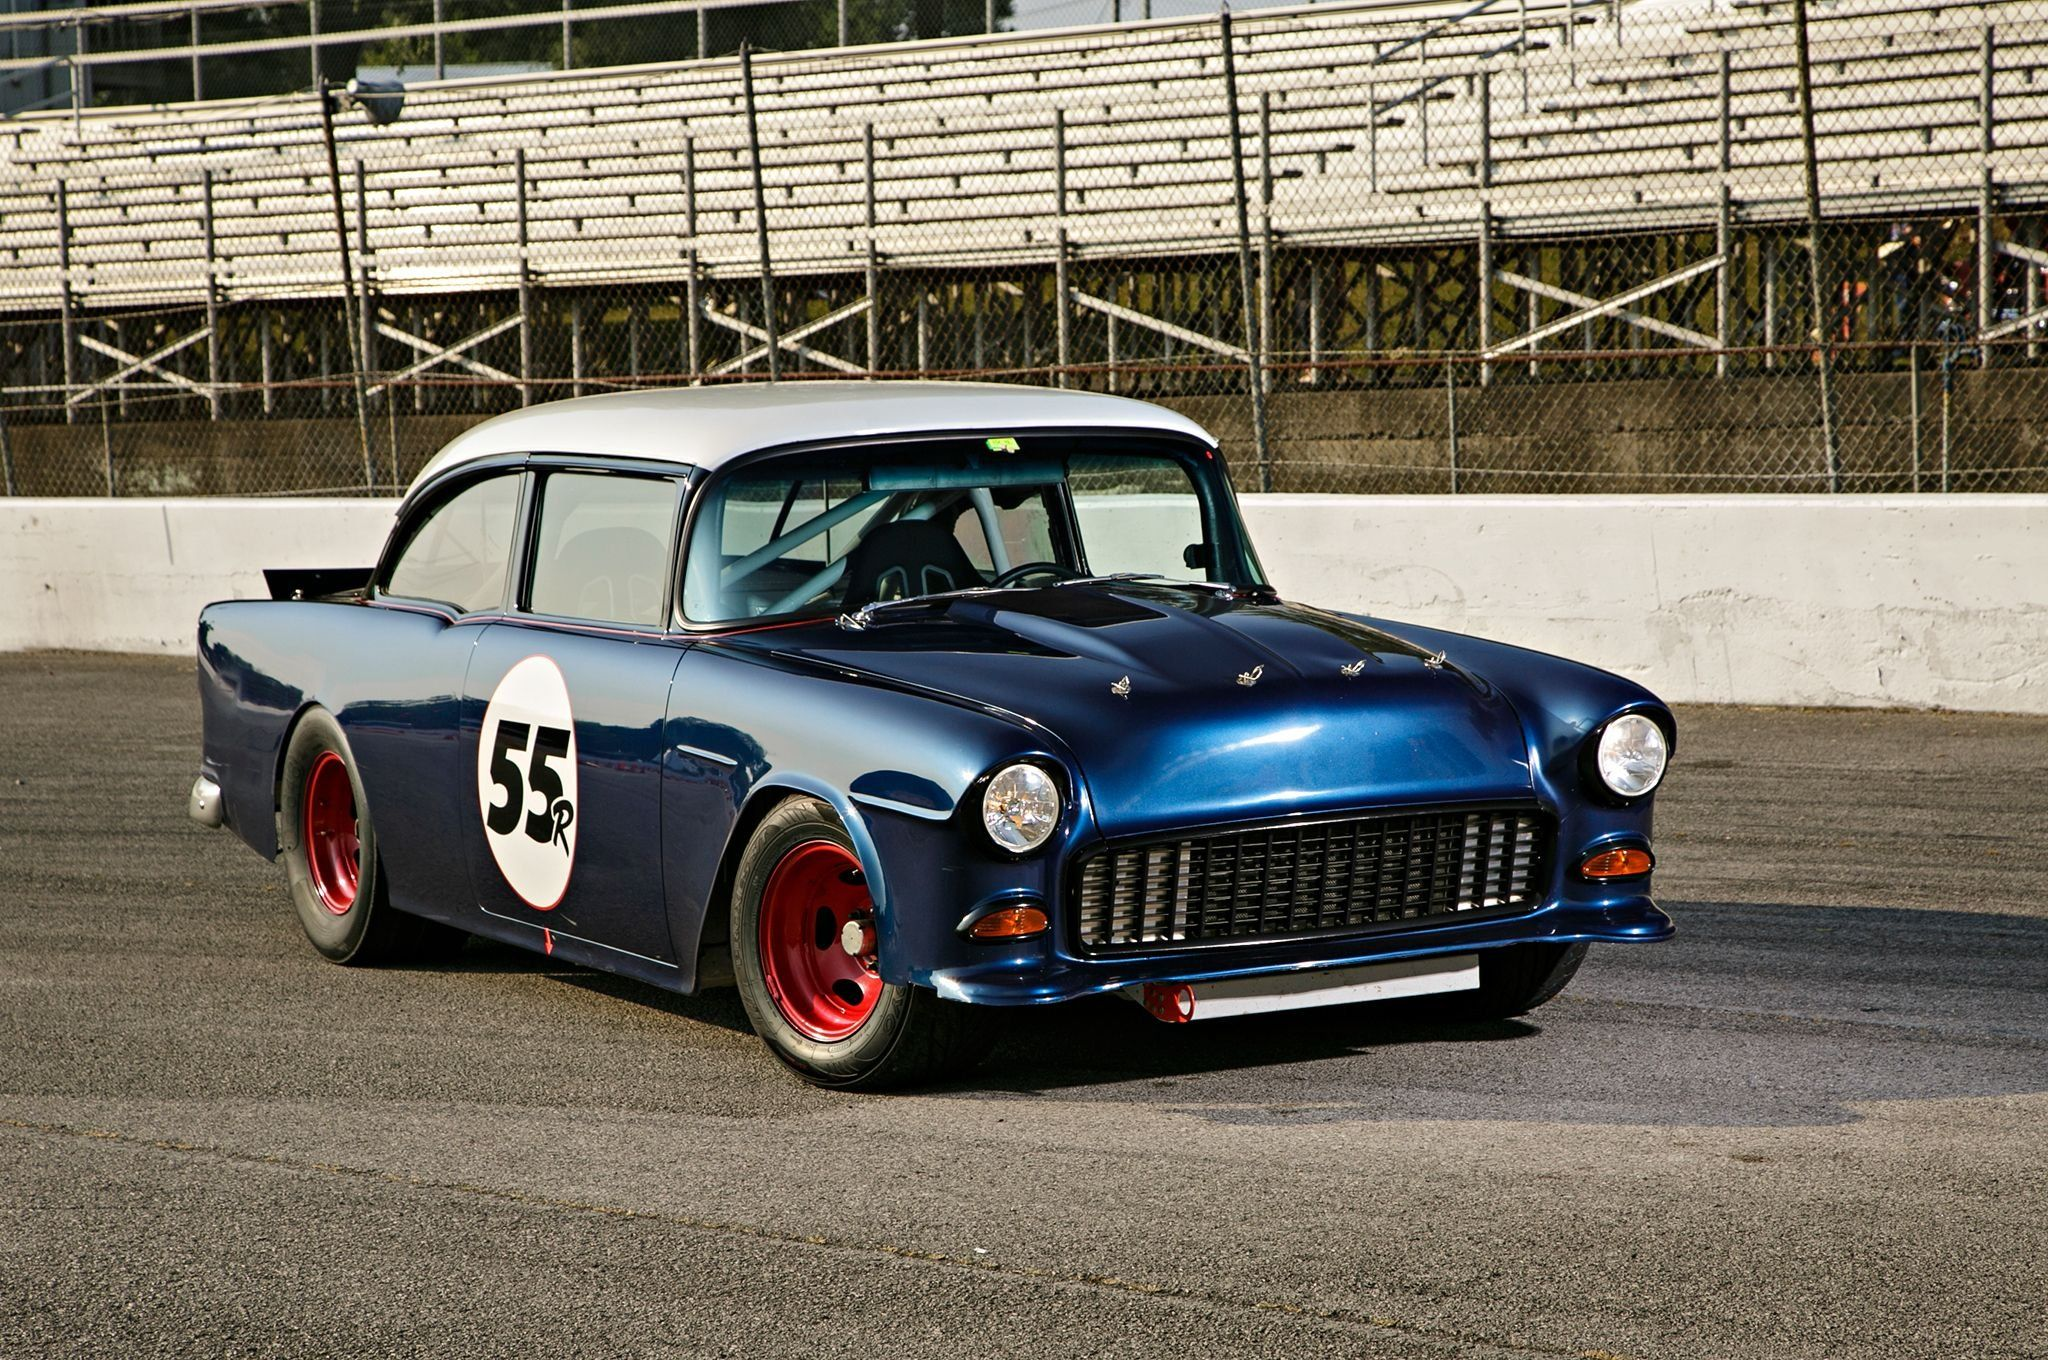 55 Chevy Muscle Car Wallpapers Top Free 55 Chevy Muscle